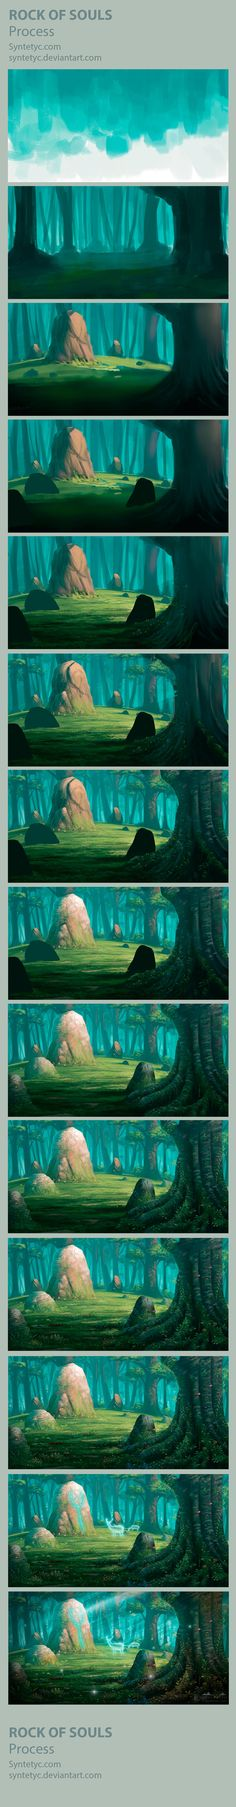 The Rock of Souls - PROCESS by Syntetyc on deviantART